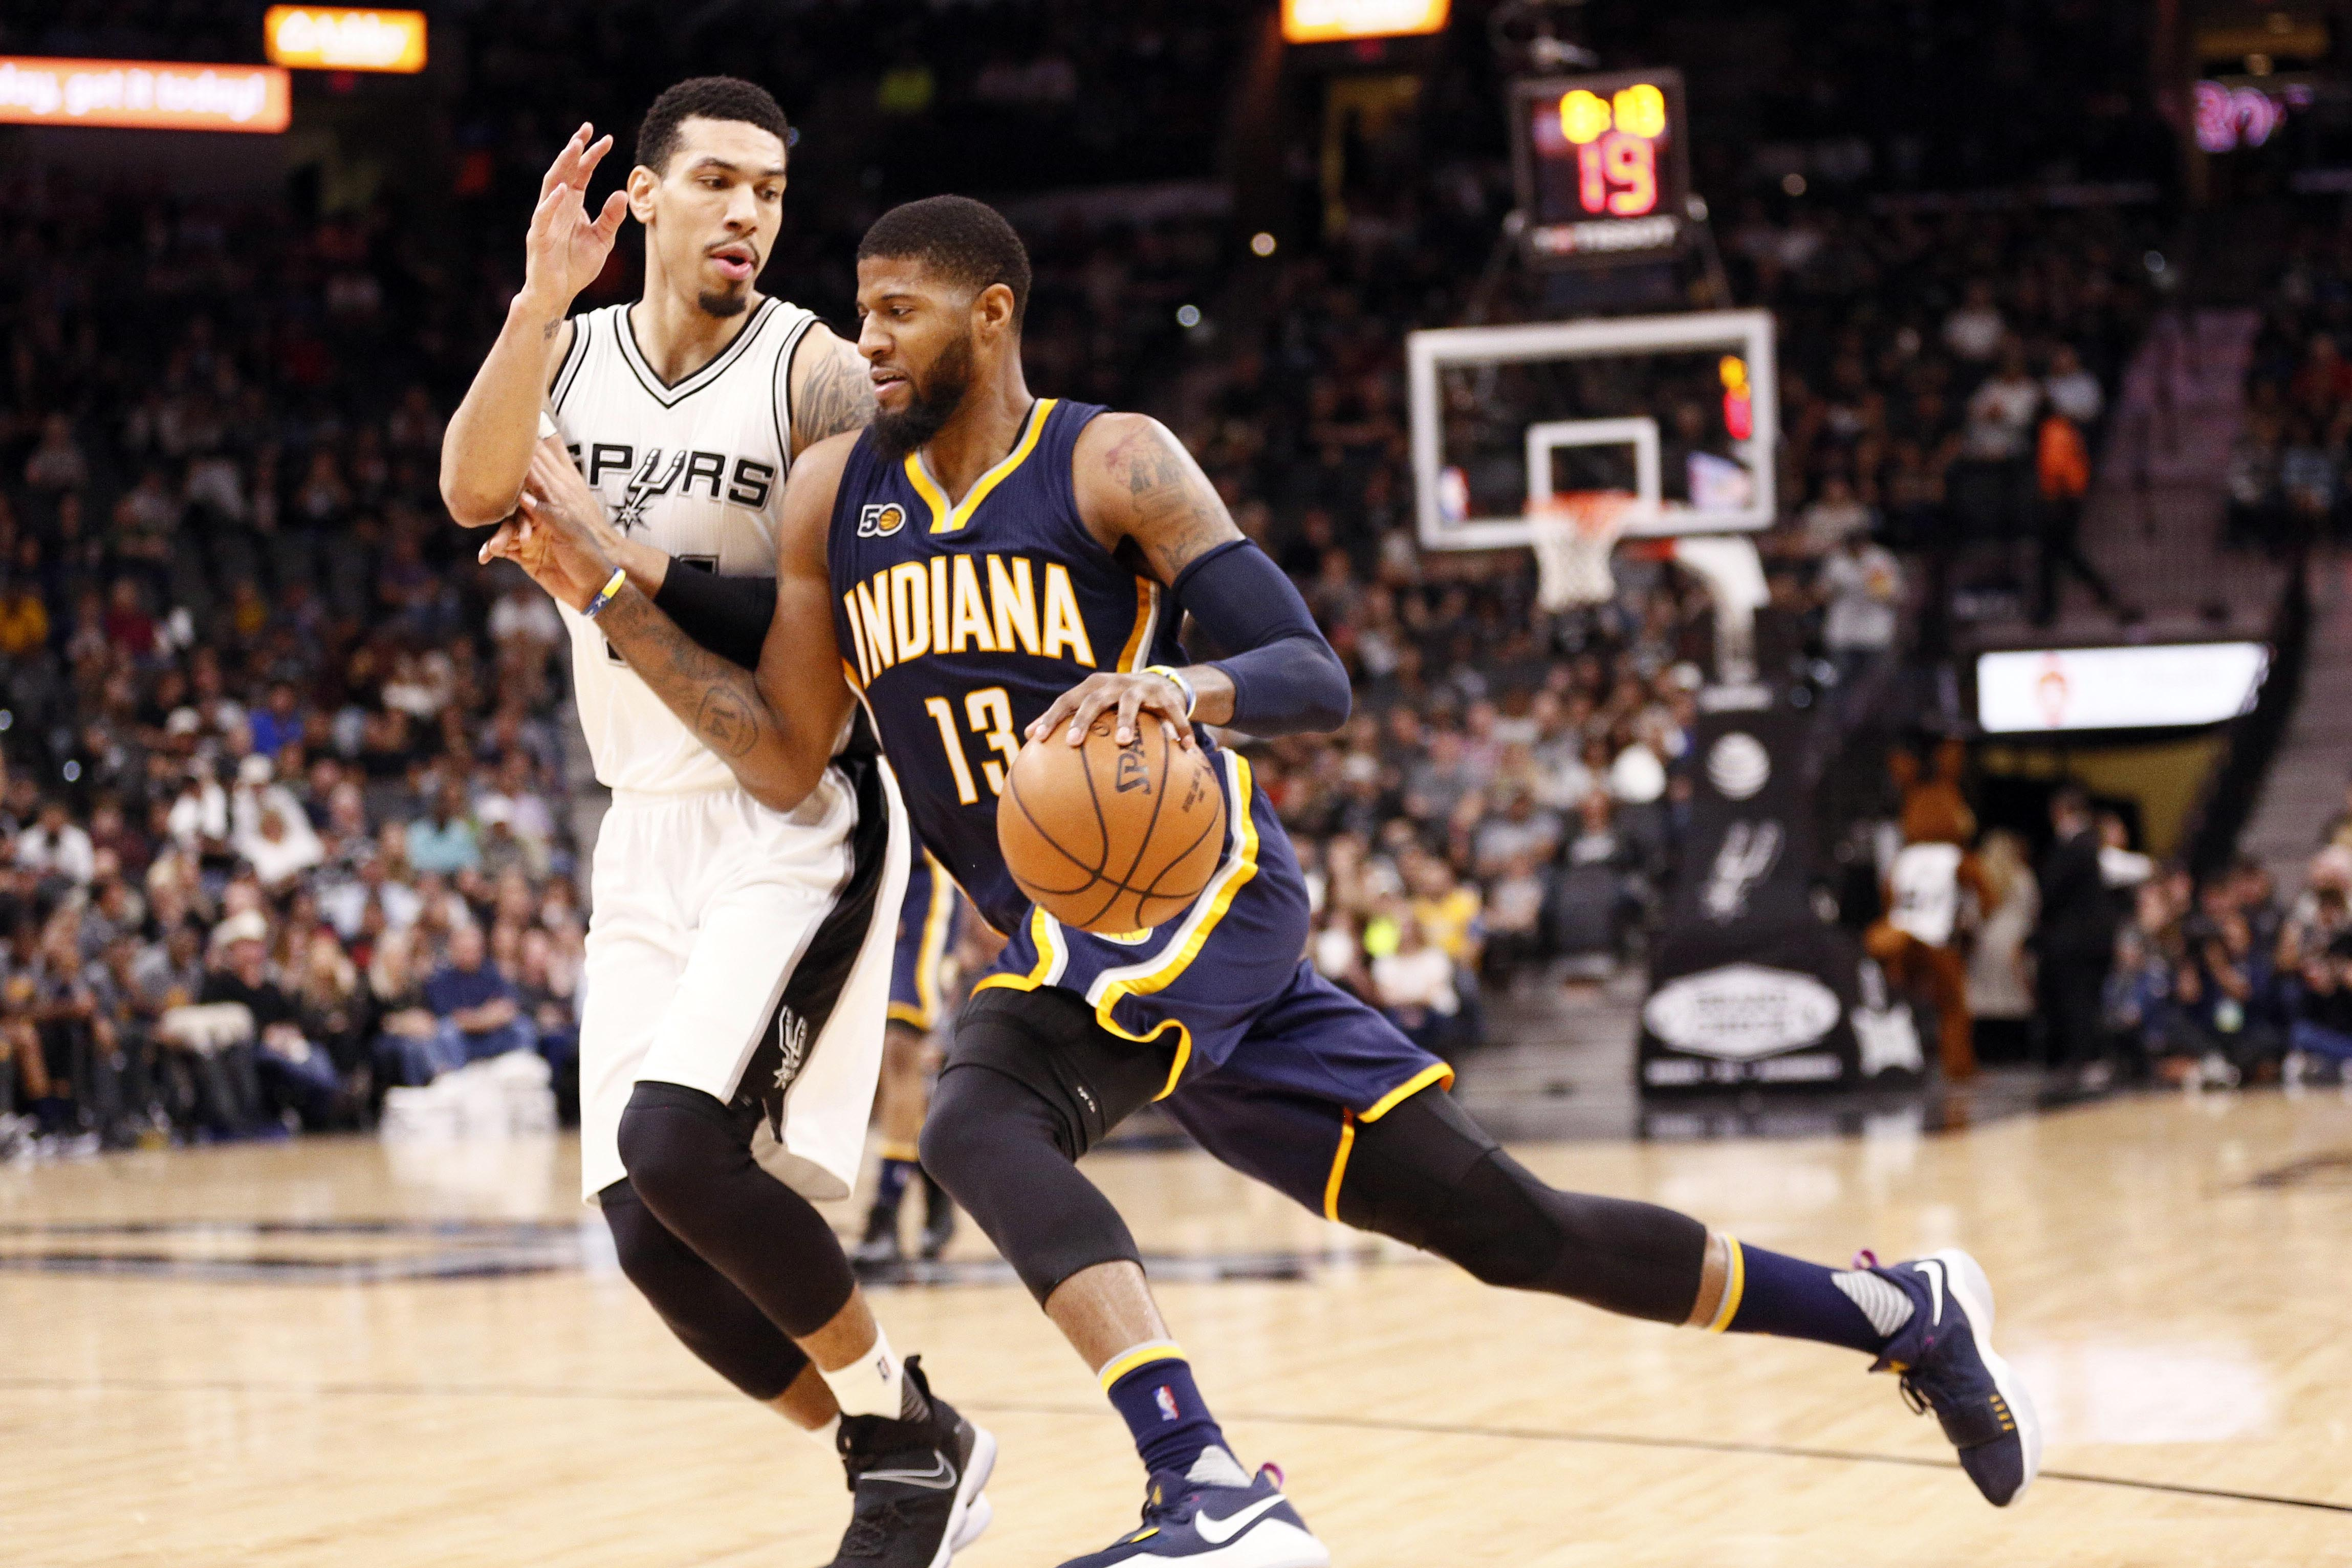 9910721-nba-indiana-pacers-at-san-antonio-spurs